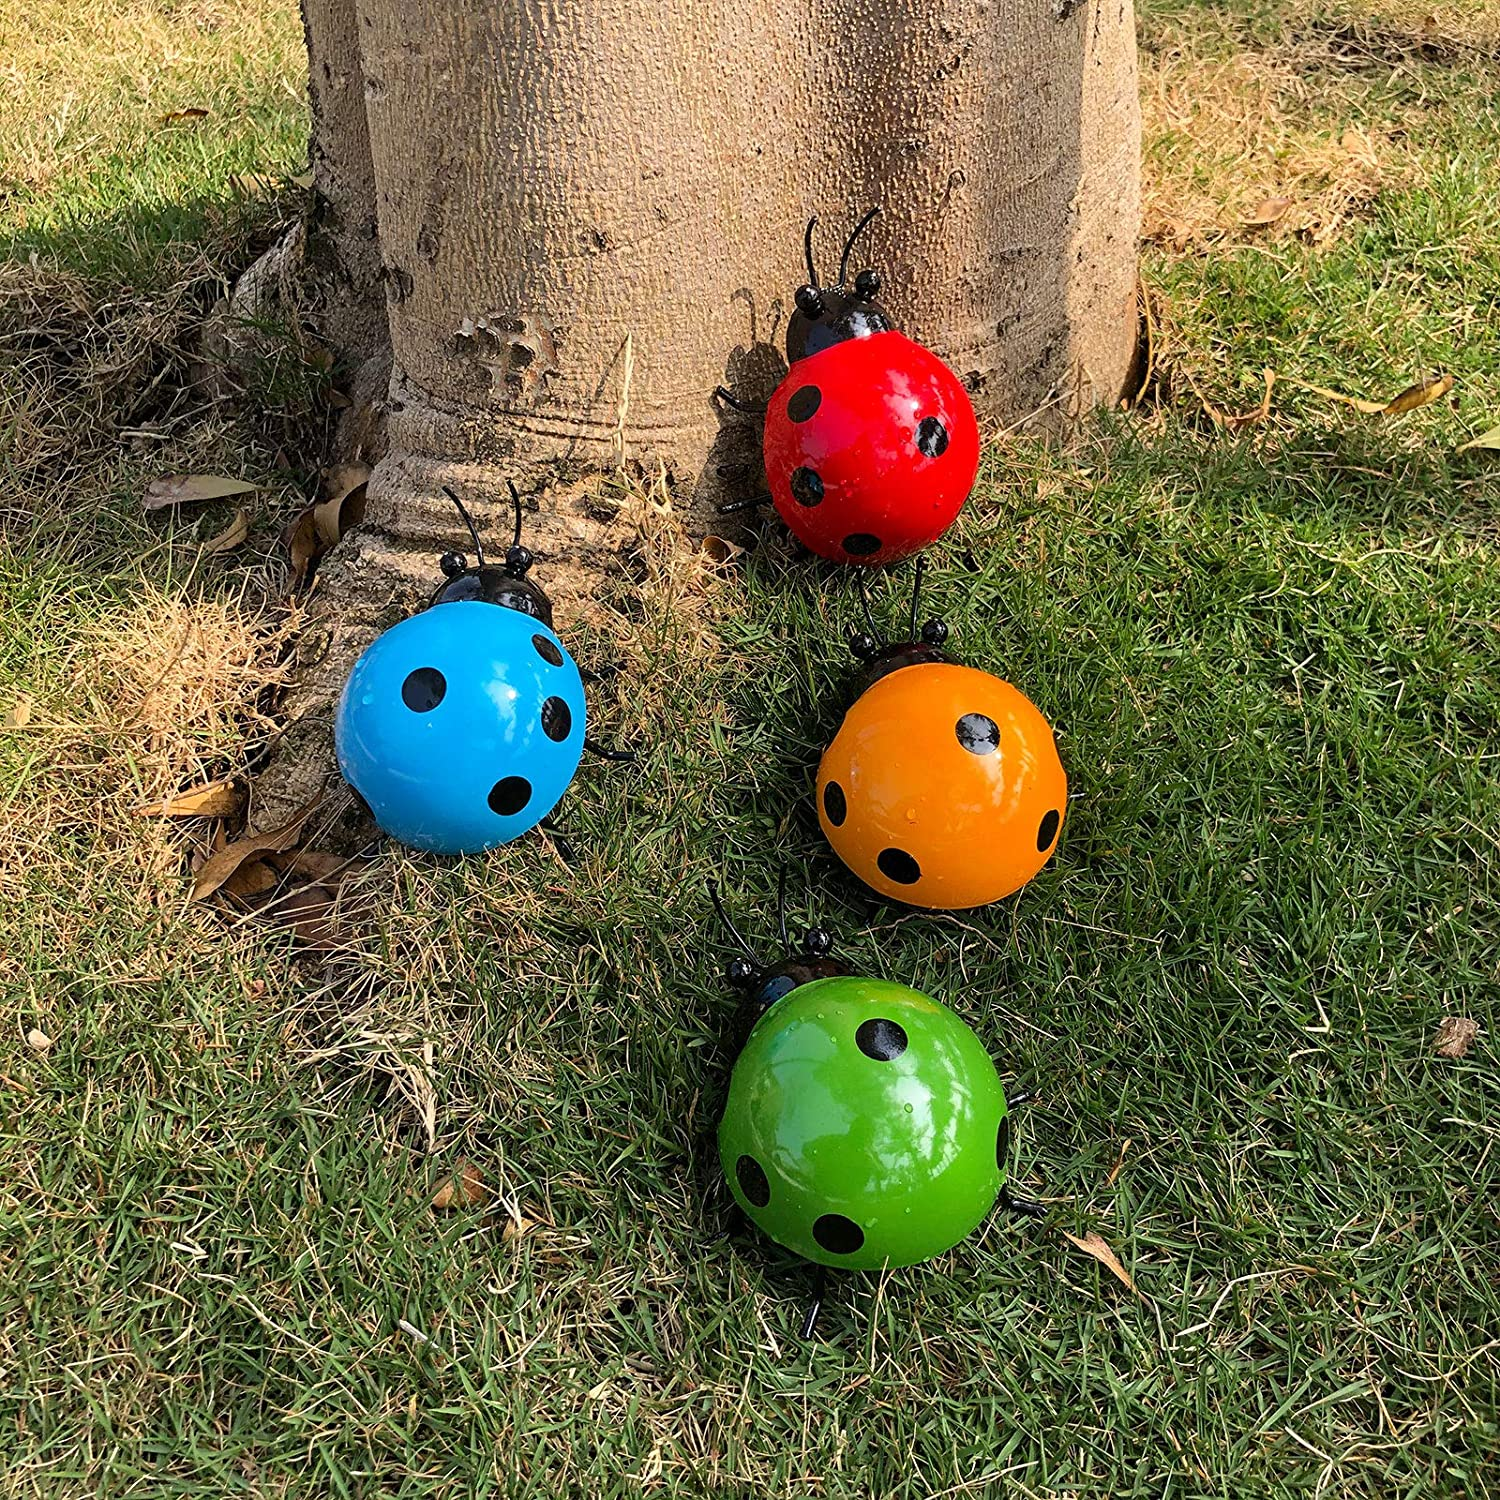 ALLADINBOX 4Pcs Metal Ladybug Wall Art Decor Nature Inspired Sculptures Insect Decoration for Outdoor Backyard Porch Home Patio Lawn Fence Decoration (4 Colors, 3.9 Inch)